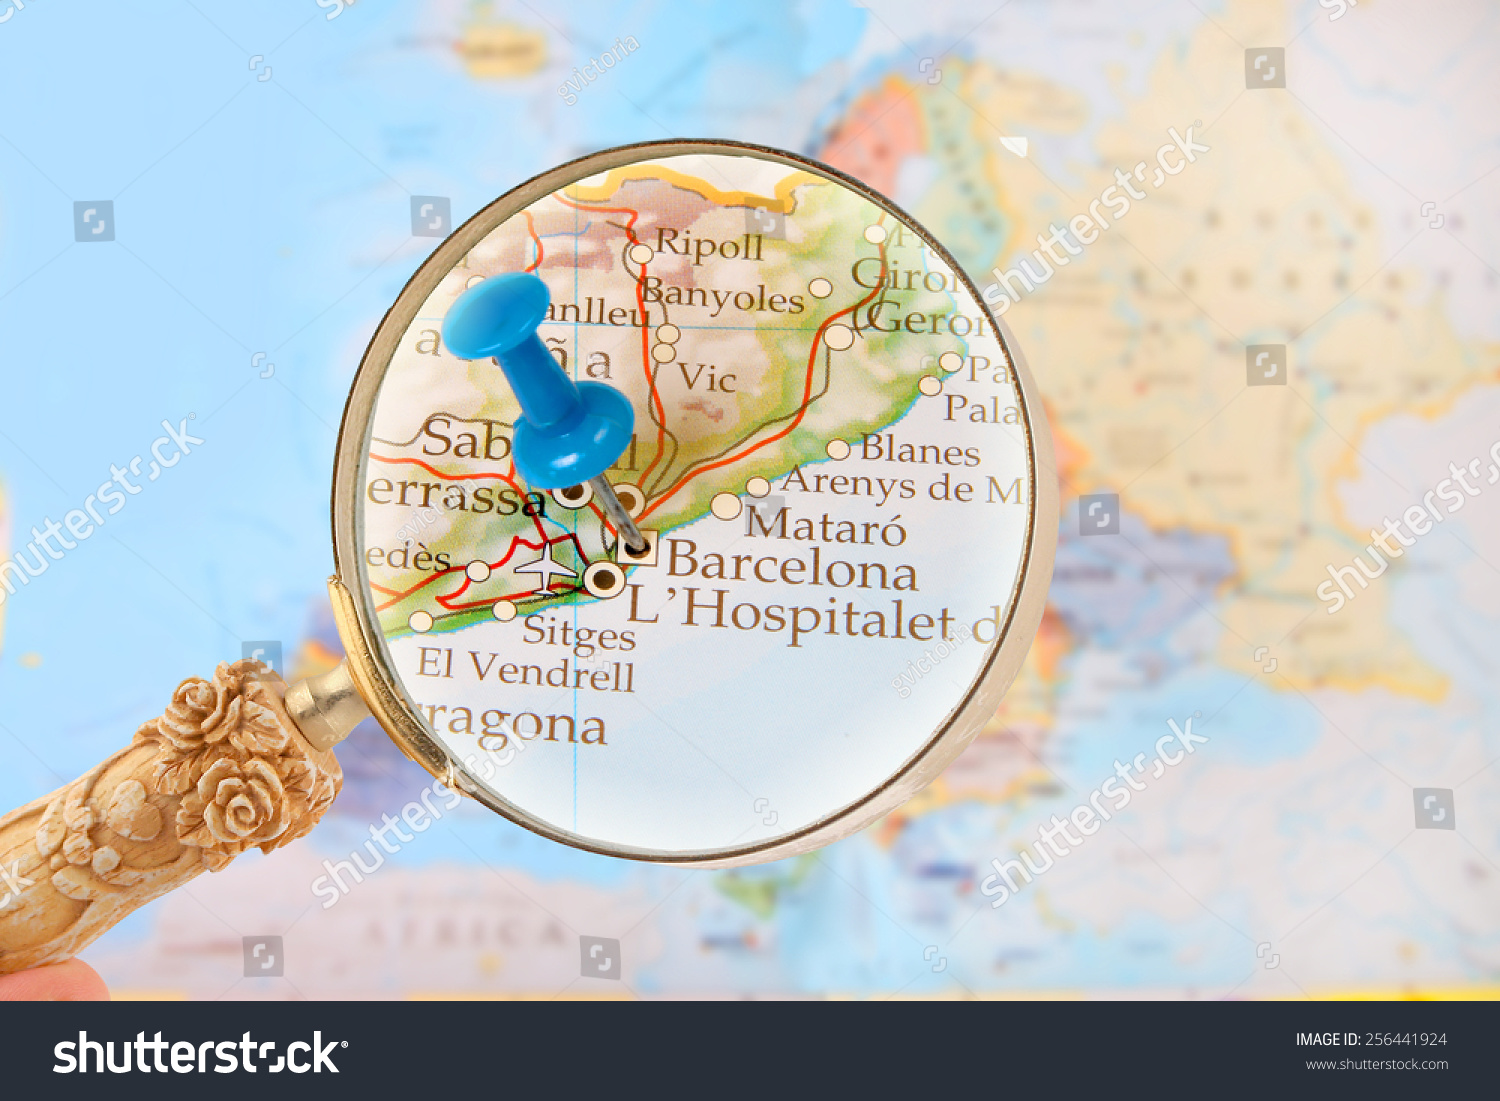 Blue Tack On Map Europe Magnifying Stock Photo (Edit Now ... Map Magnifying Gl on measure map, magnolia map, media map, zoom map, world map, information map, white map, magnetic map, metal map,